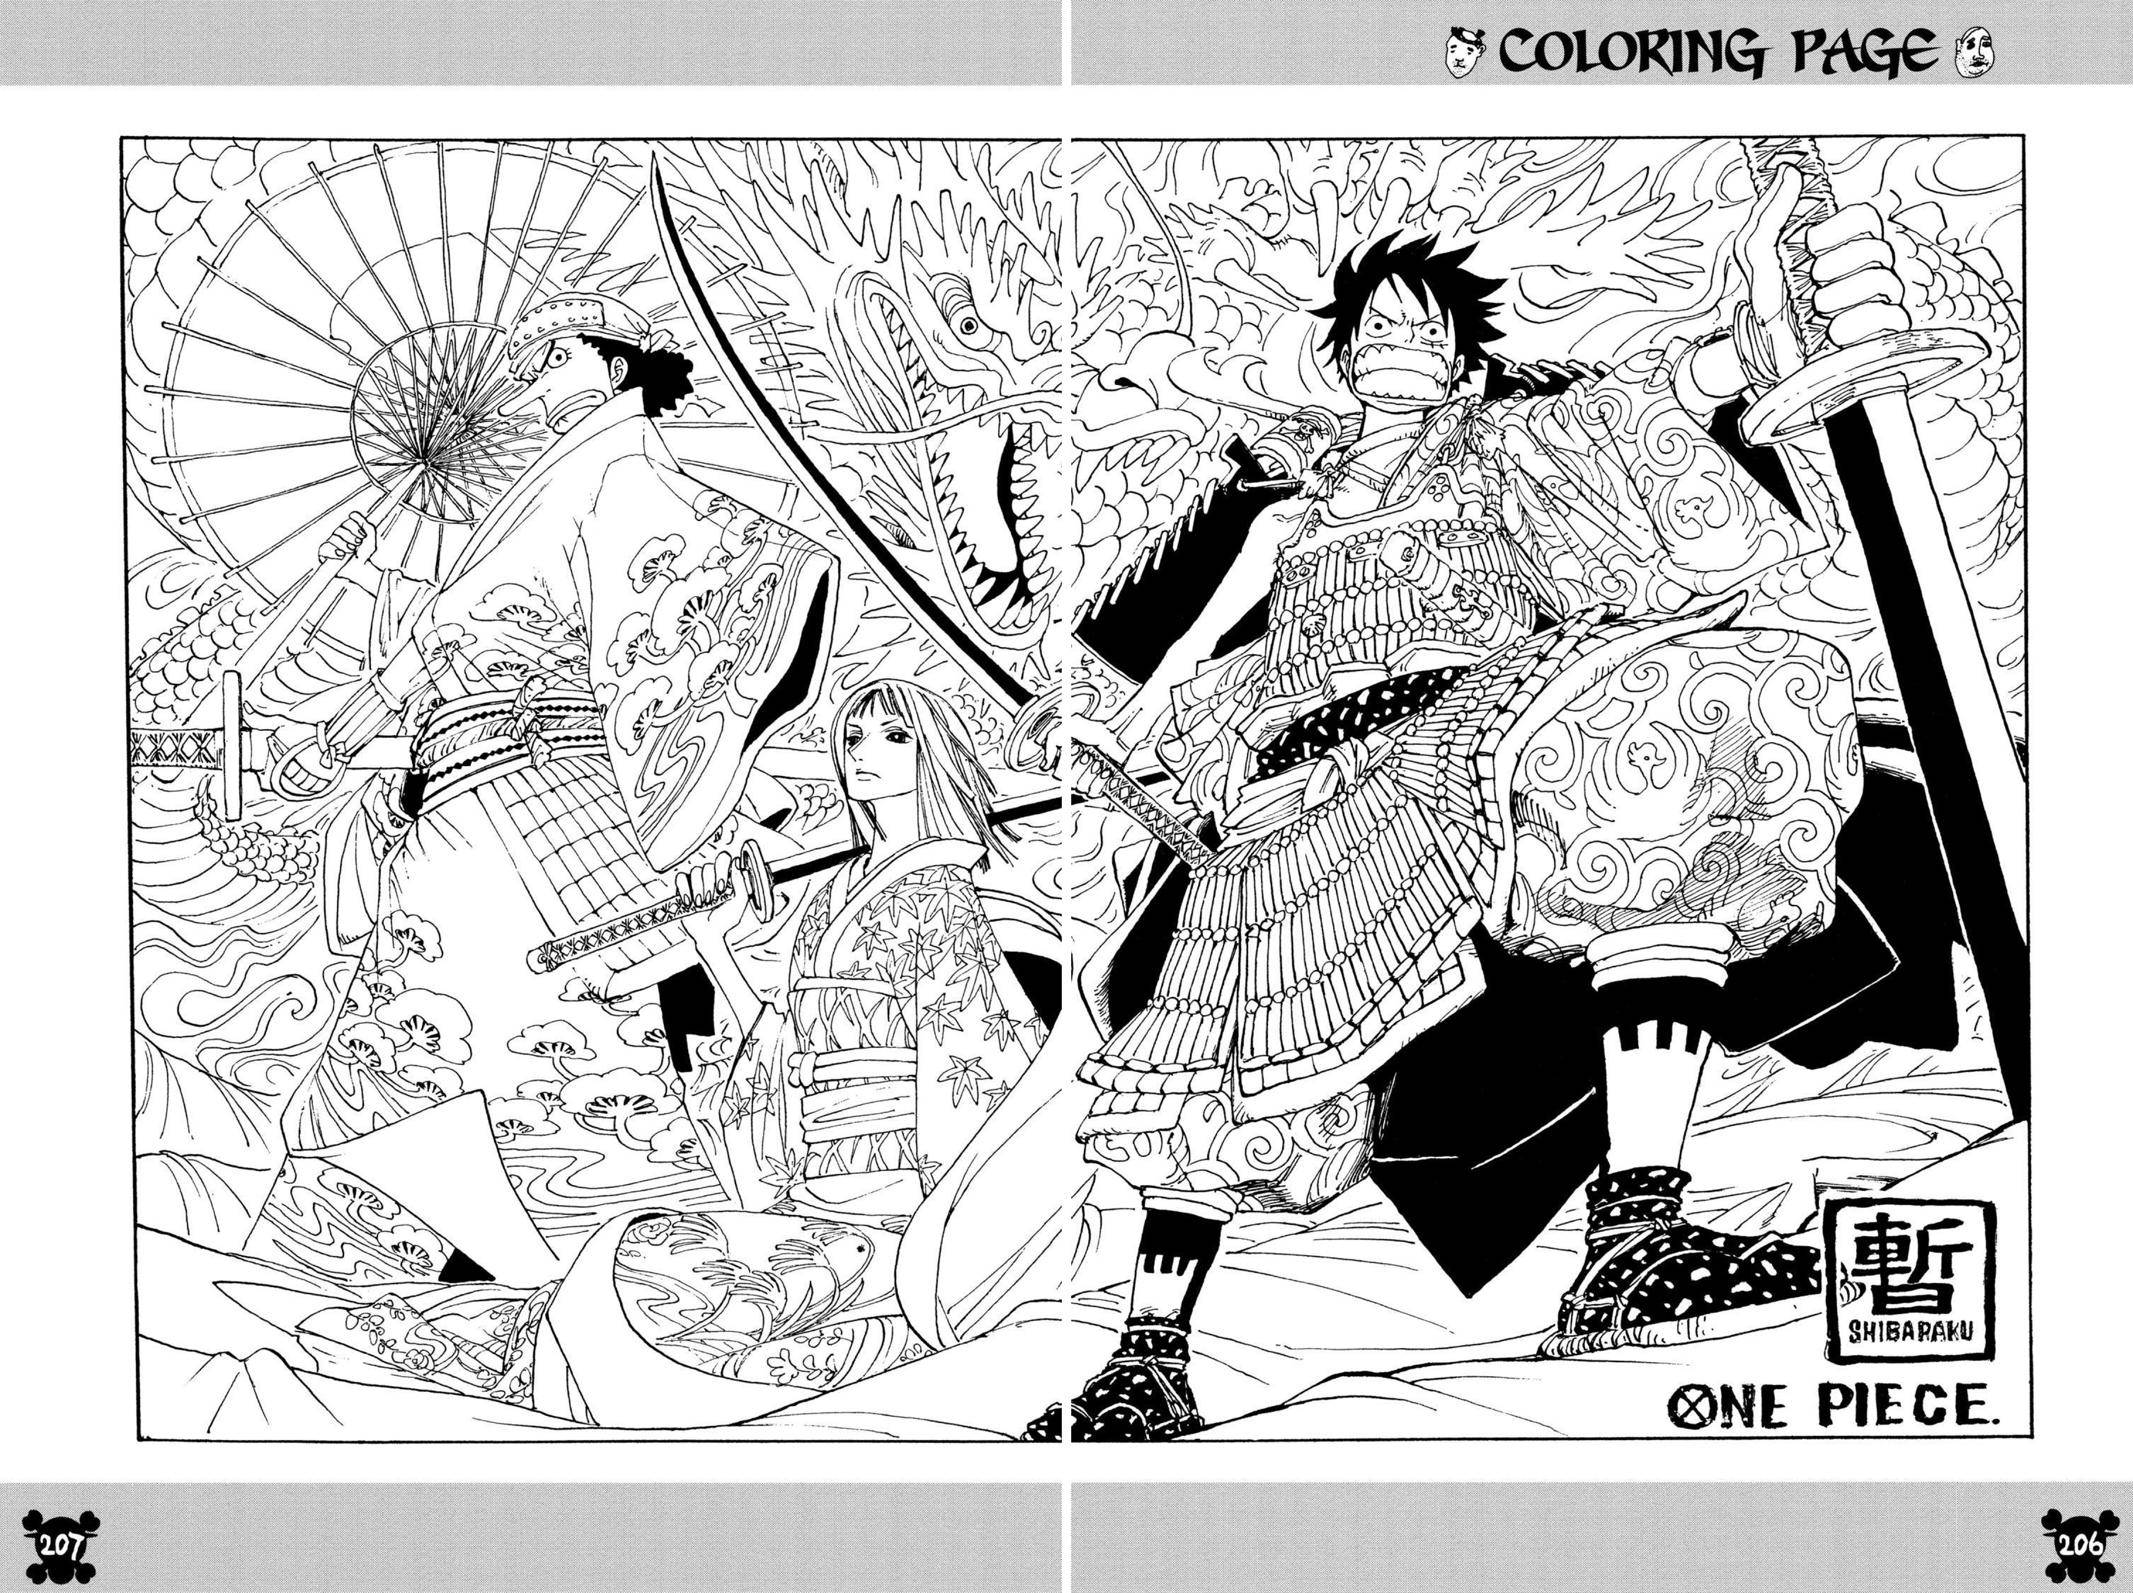 One Piece Chapter 346 Page 19